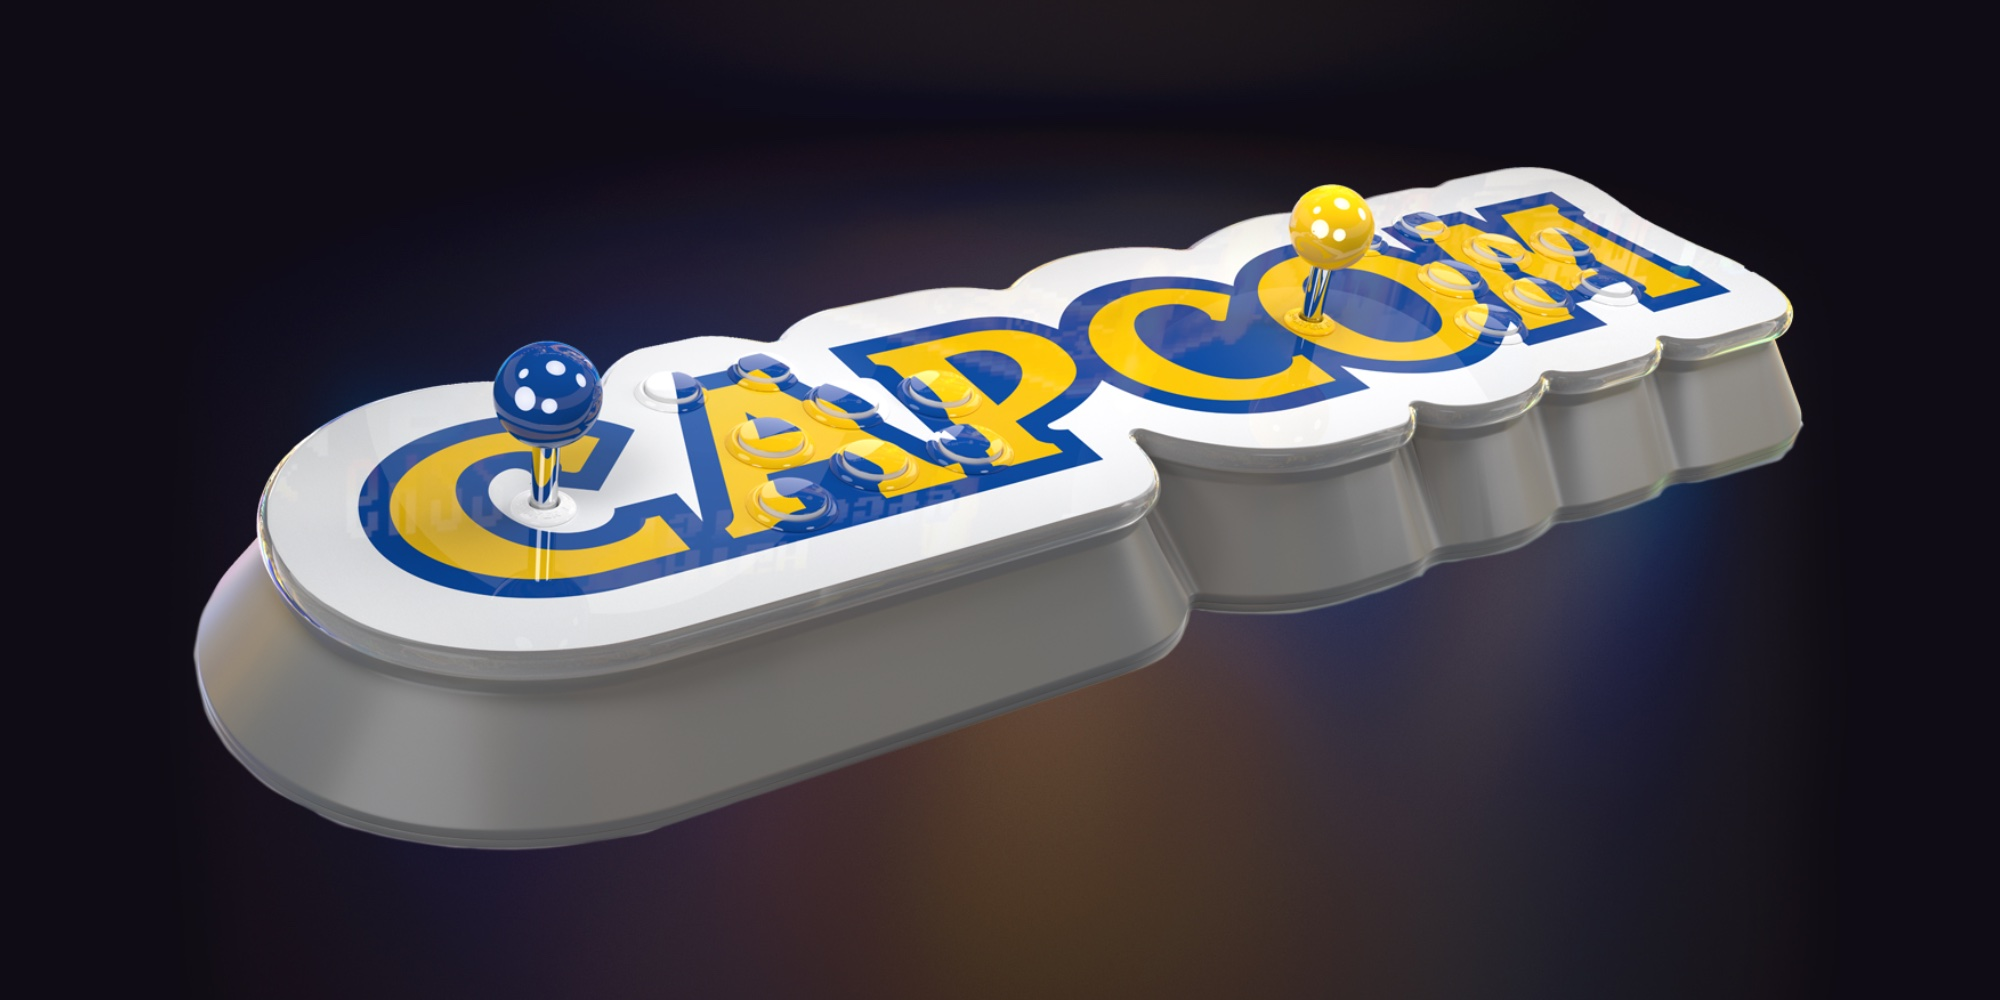 Capcom brings Mega Man, Street Fighter II and more to upcoming plug-and-play Home Arcade